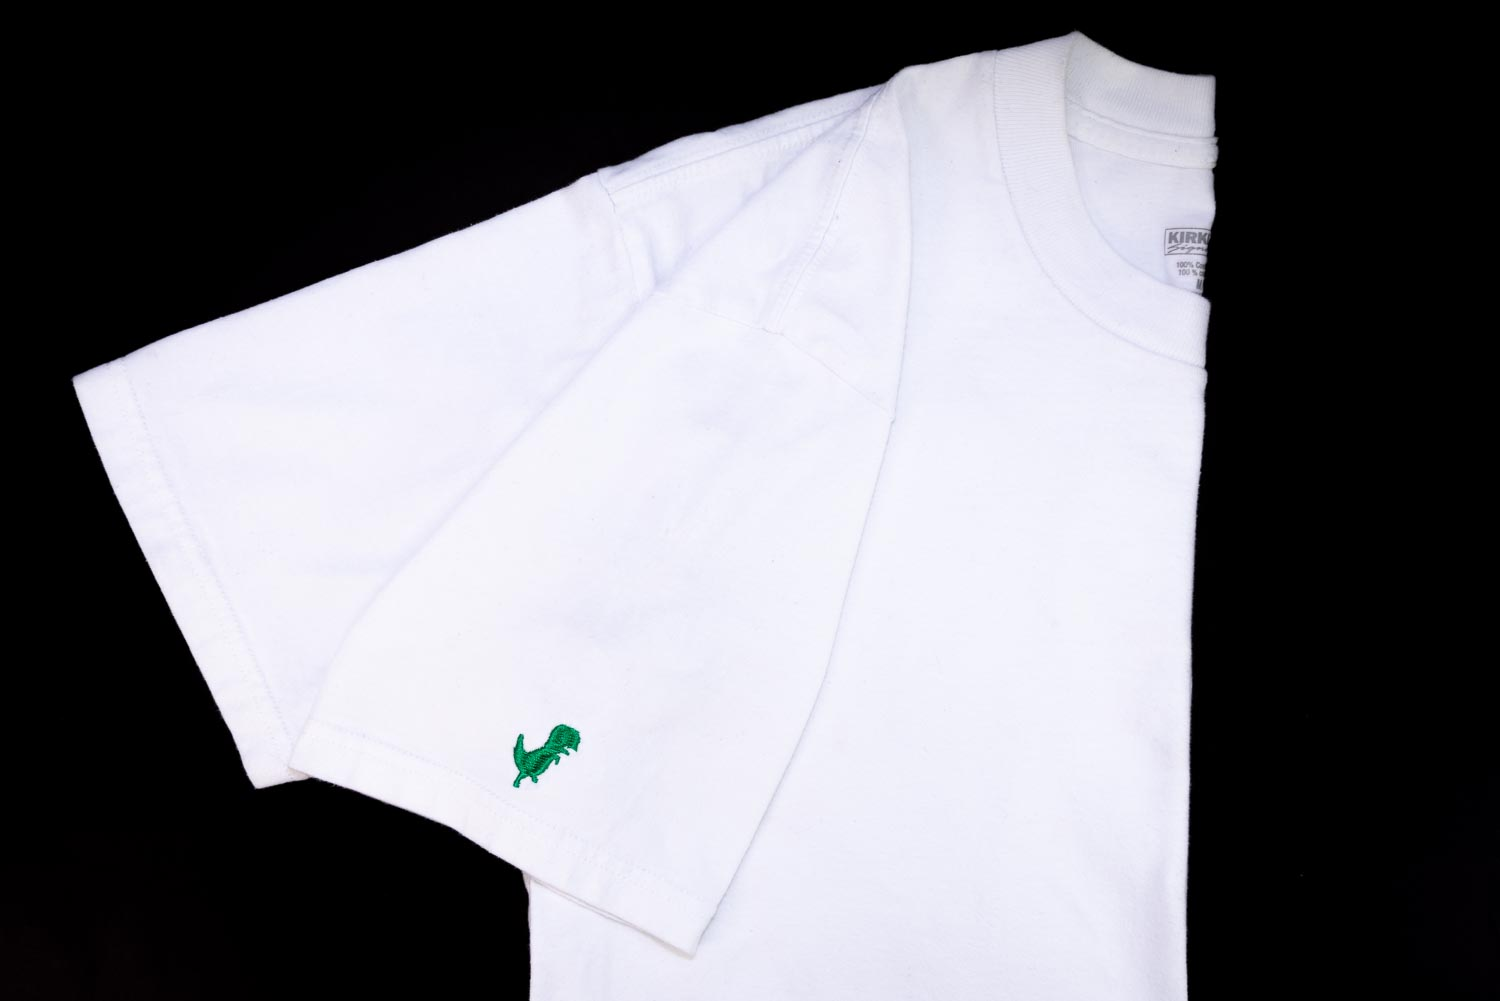 Embroidered t-shirt sleeve